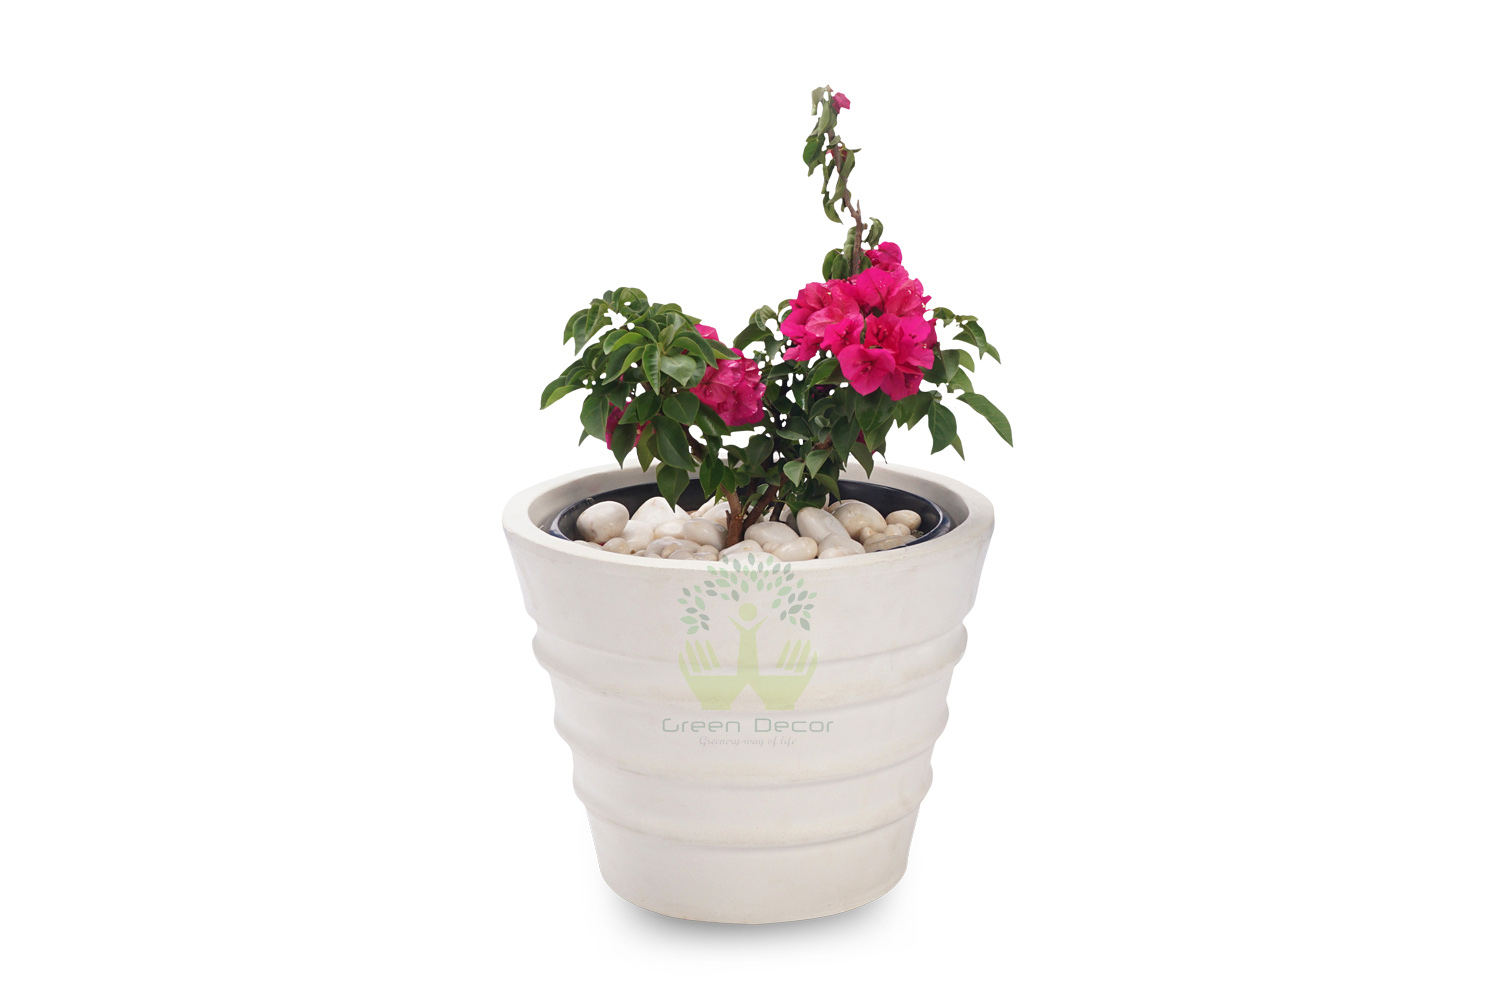 Buy Bougainvillea Plants , White Pots and seeds in Delhi NCR by the best online nursery shop Greendecor.